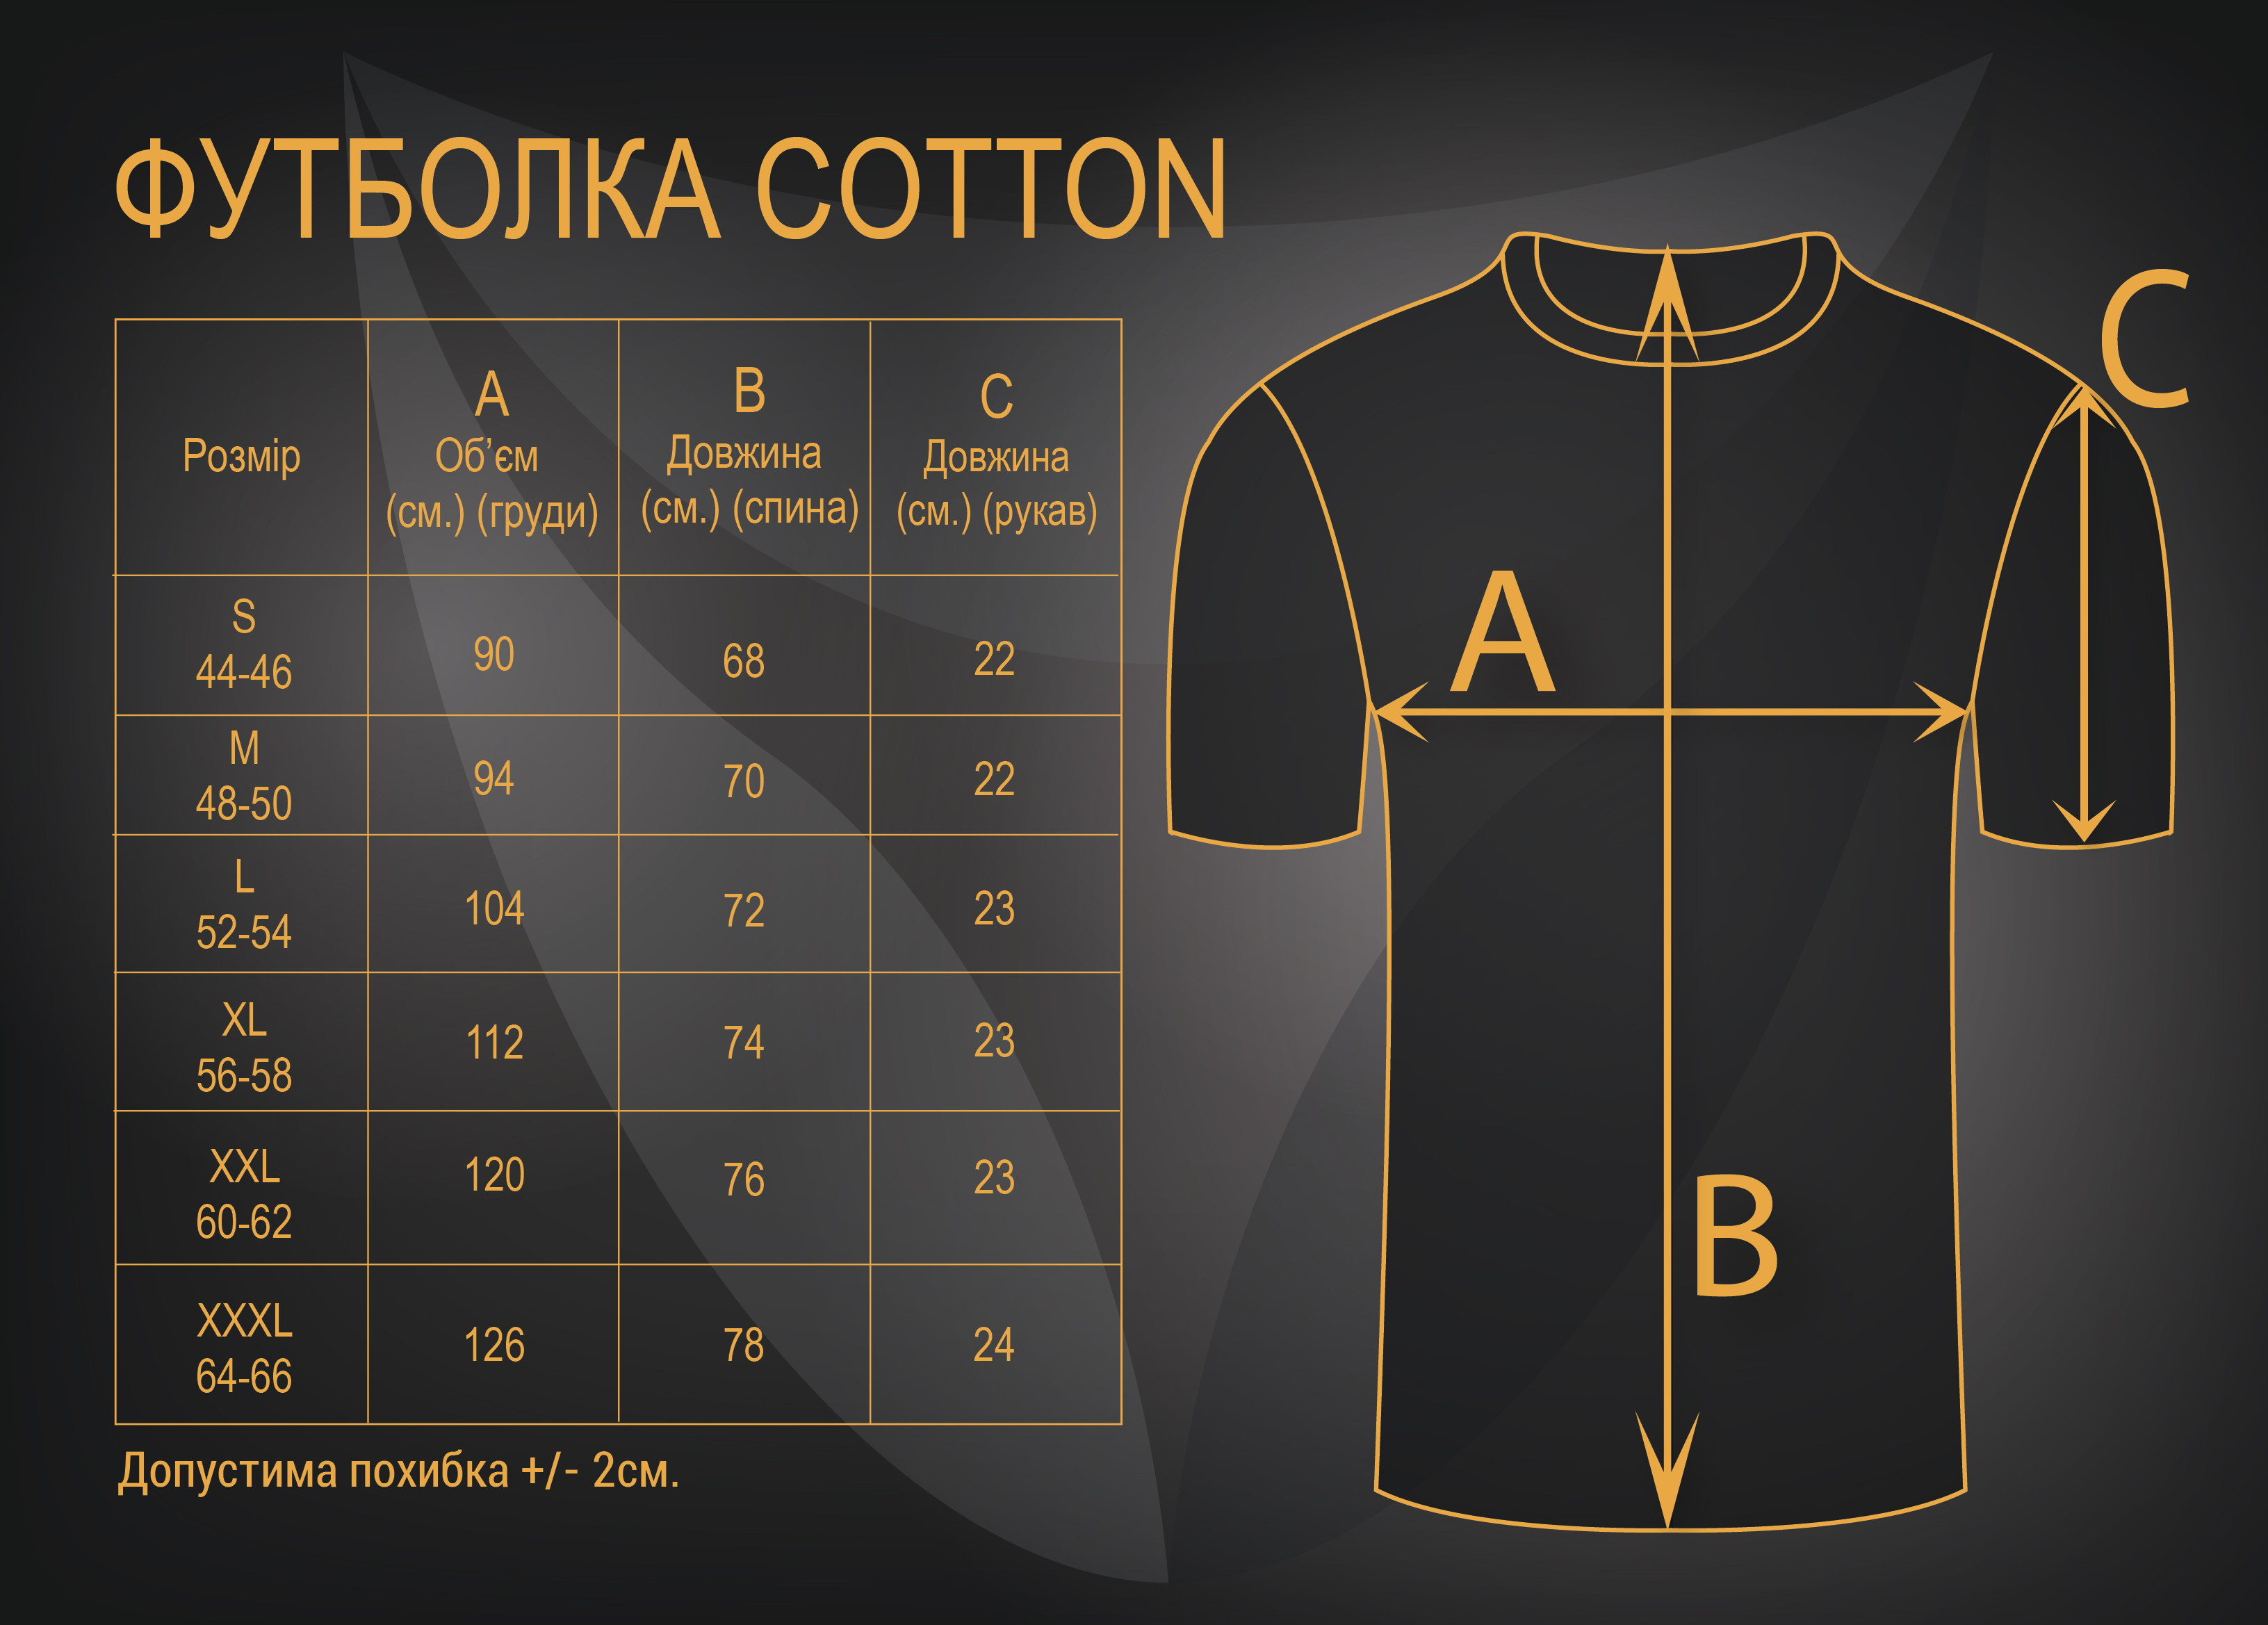 Футболка Cotton OAK  СТ-фото22